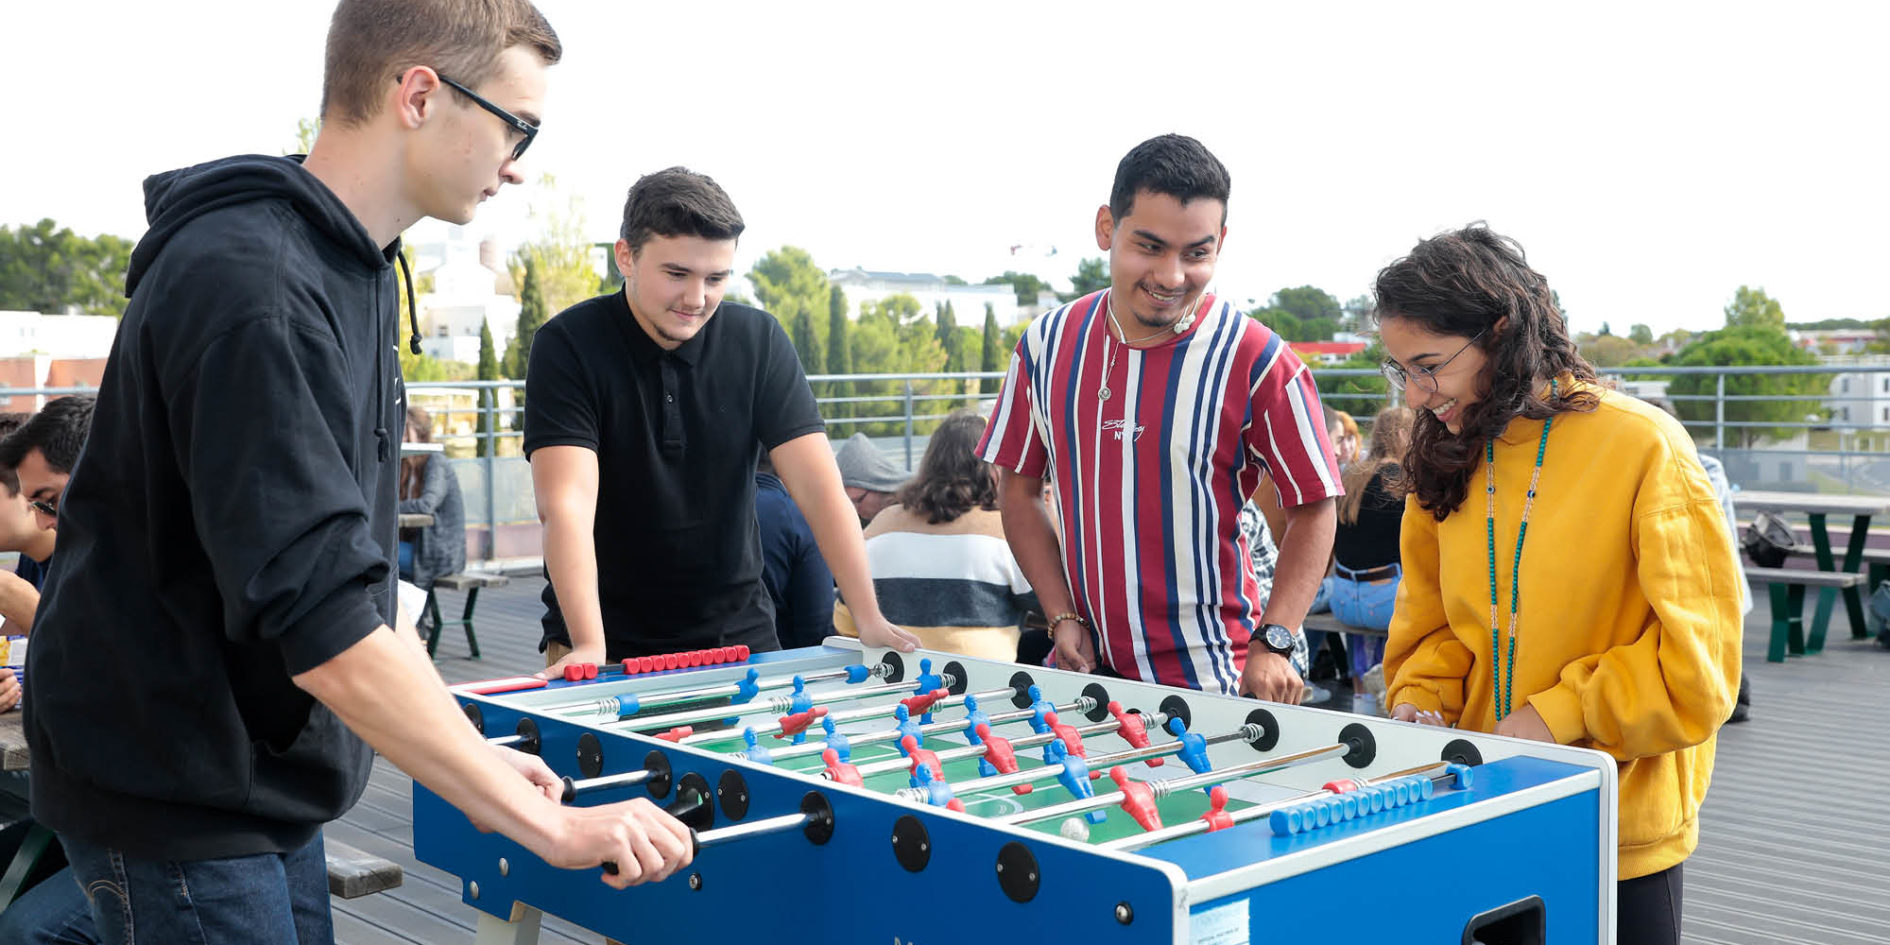 étudiants au babyfoot